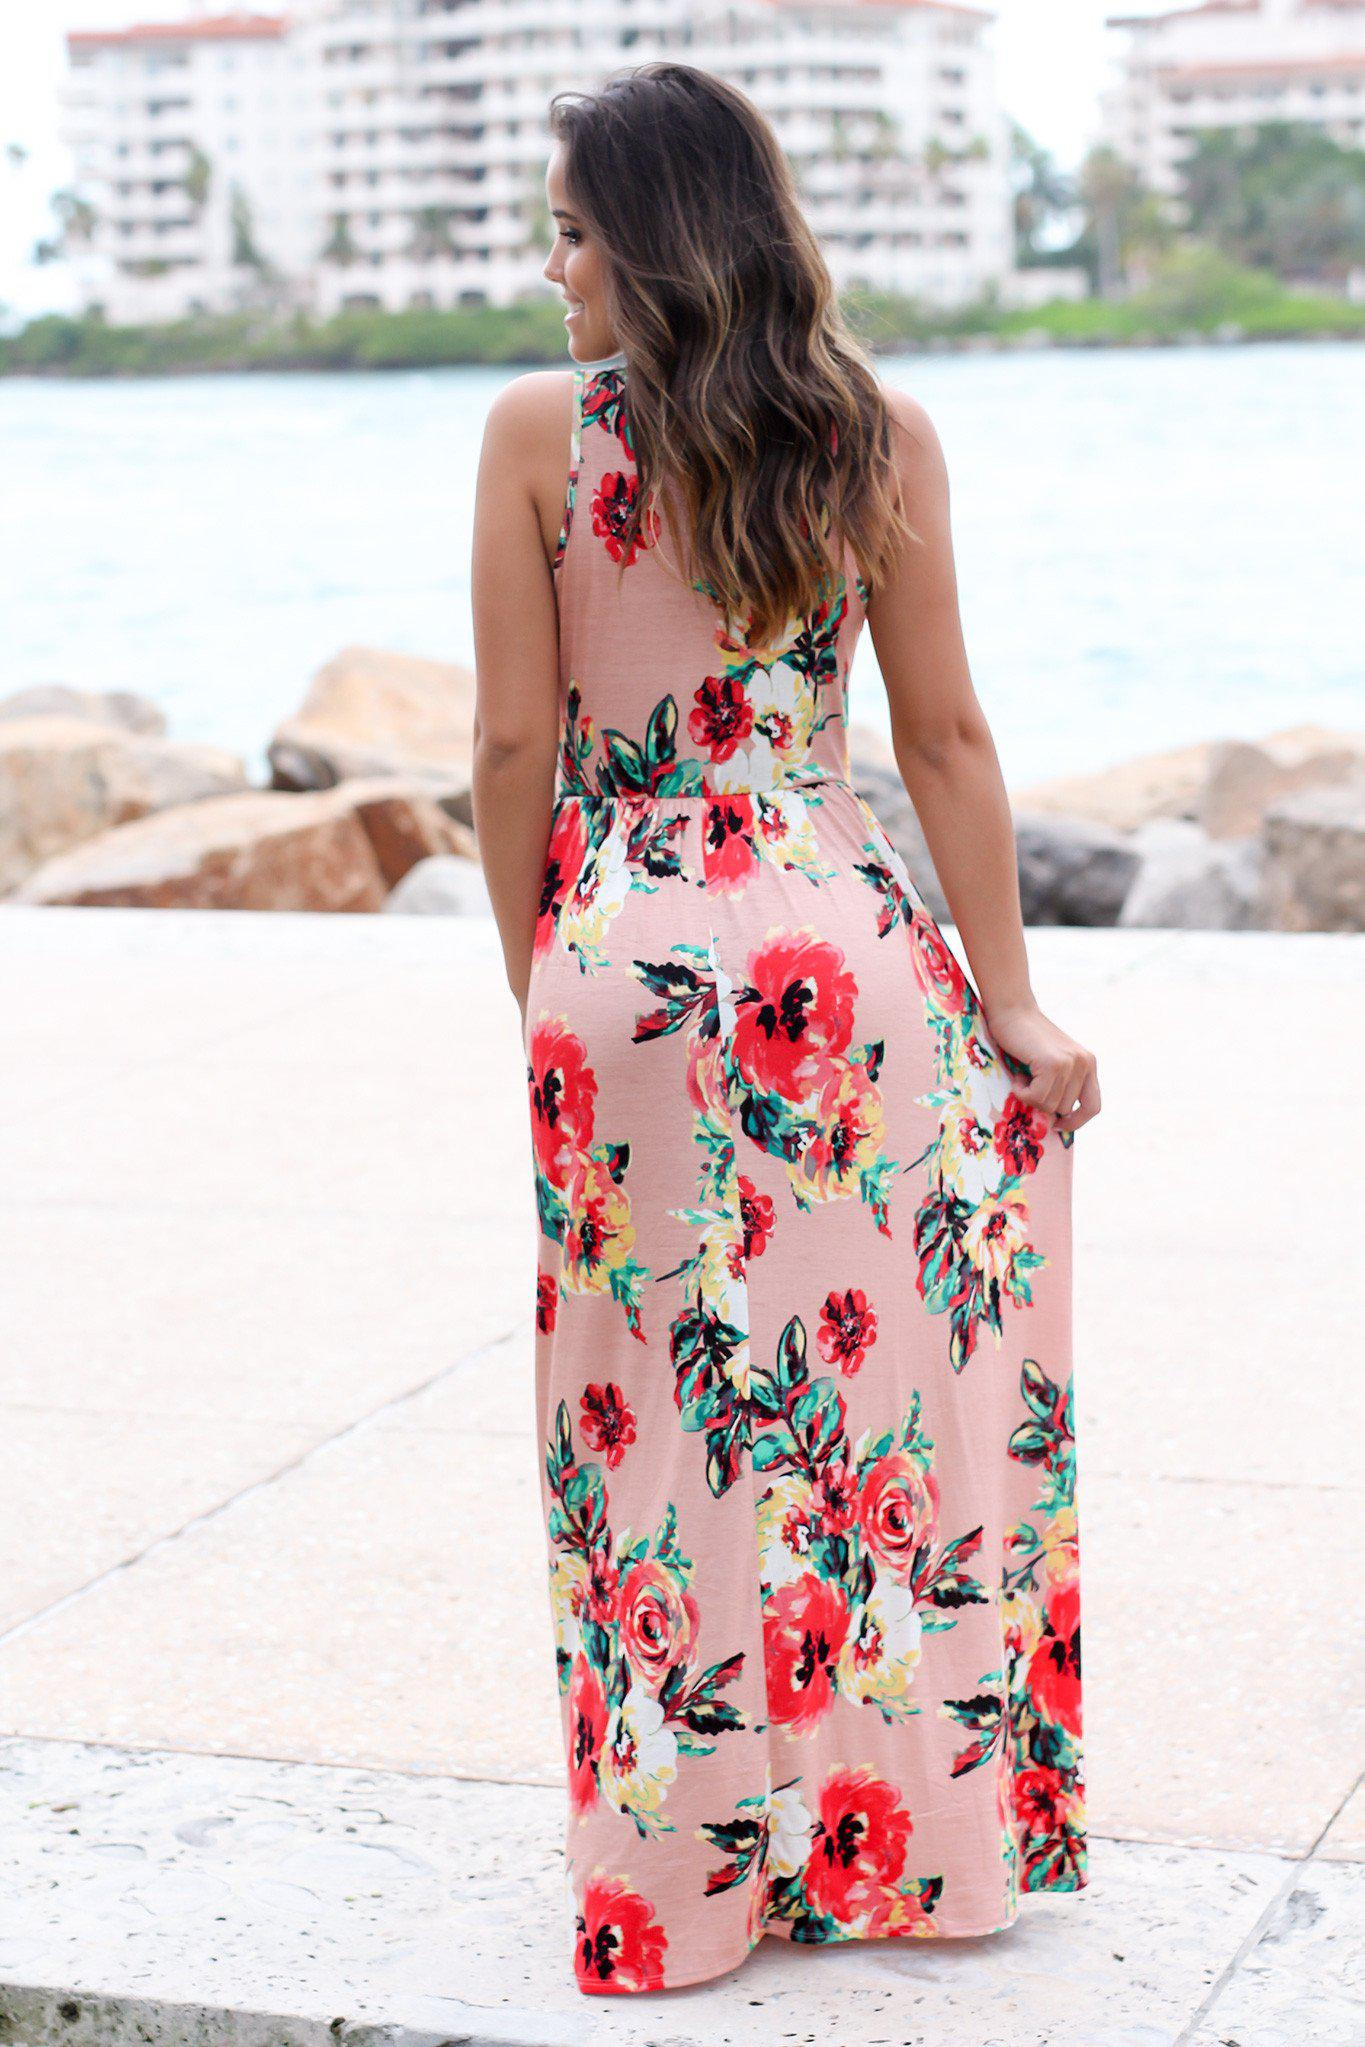 Peach Floral Sleeveless Maxi Dress